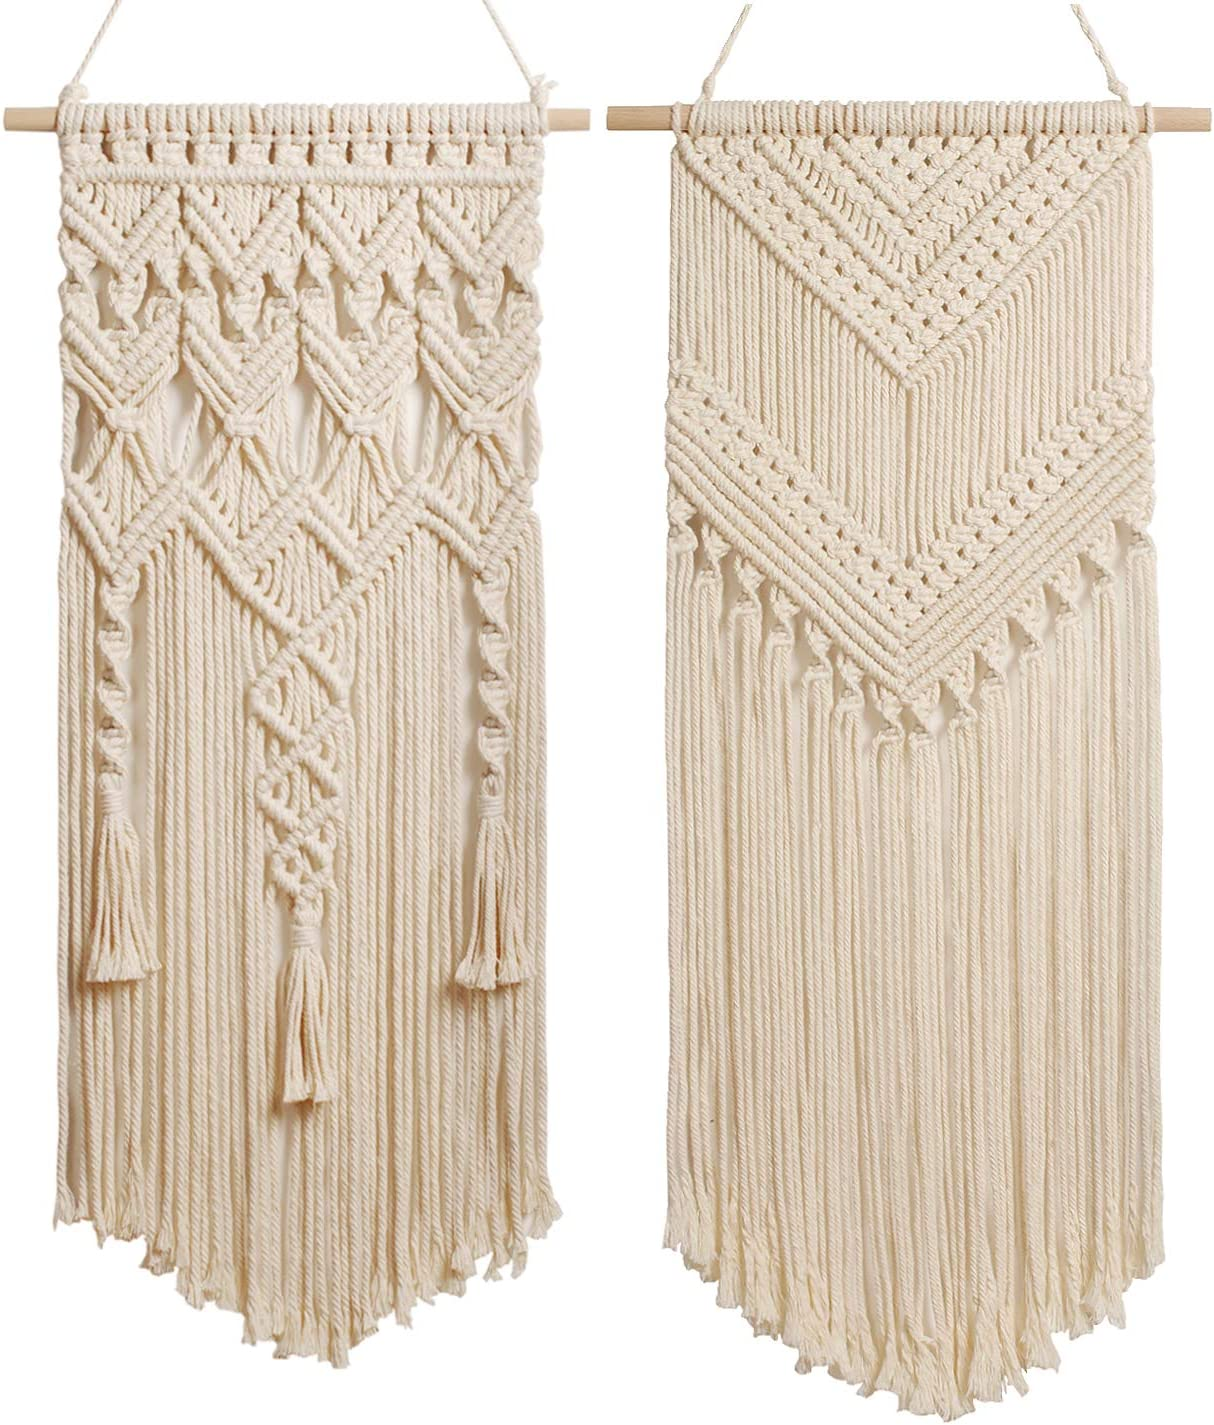 2 Pcs Macrame Woven Tapestry Wall Hanging, Boho Chic Bohemian Home Geometric Wall Art Decor – for Home Decor, Dorm room, Apartment, Nursery, Gallery, Party Decorations, 28 L x 13.8 W 29 L x13 W